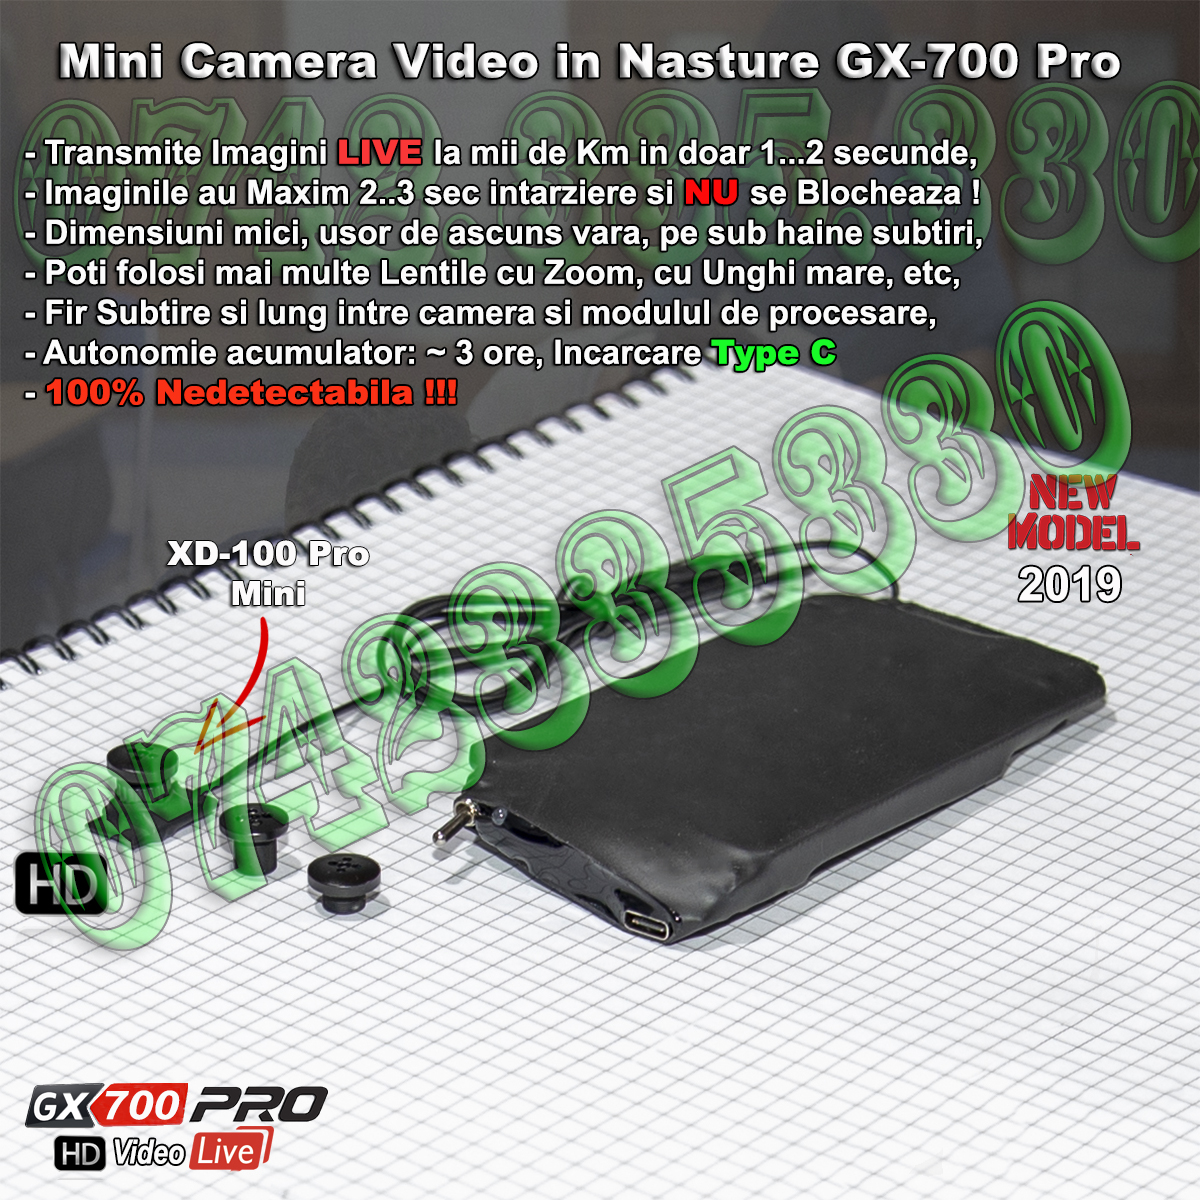 camera video pentru copiat GX700